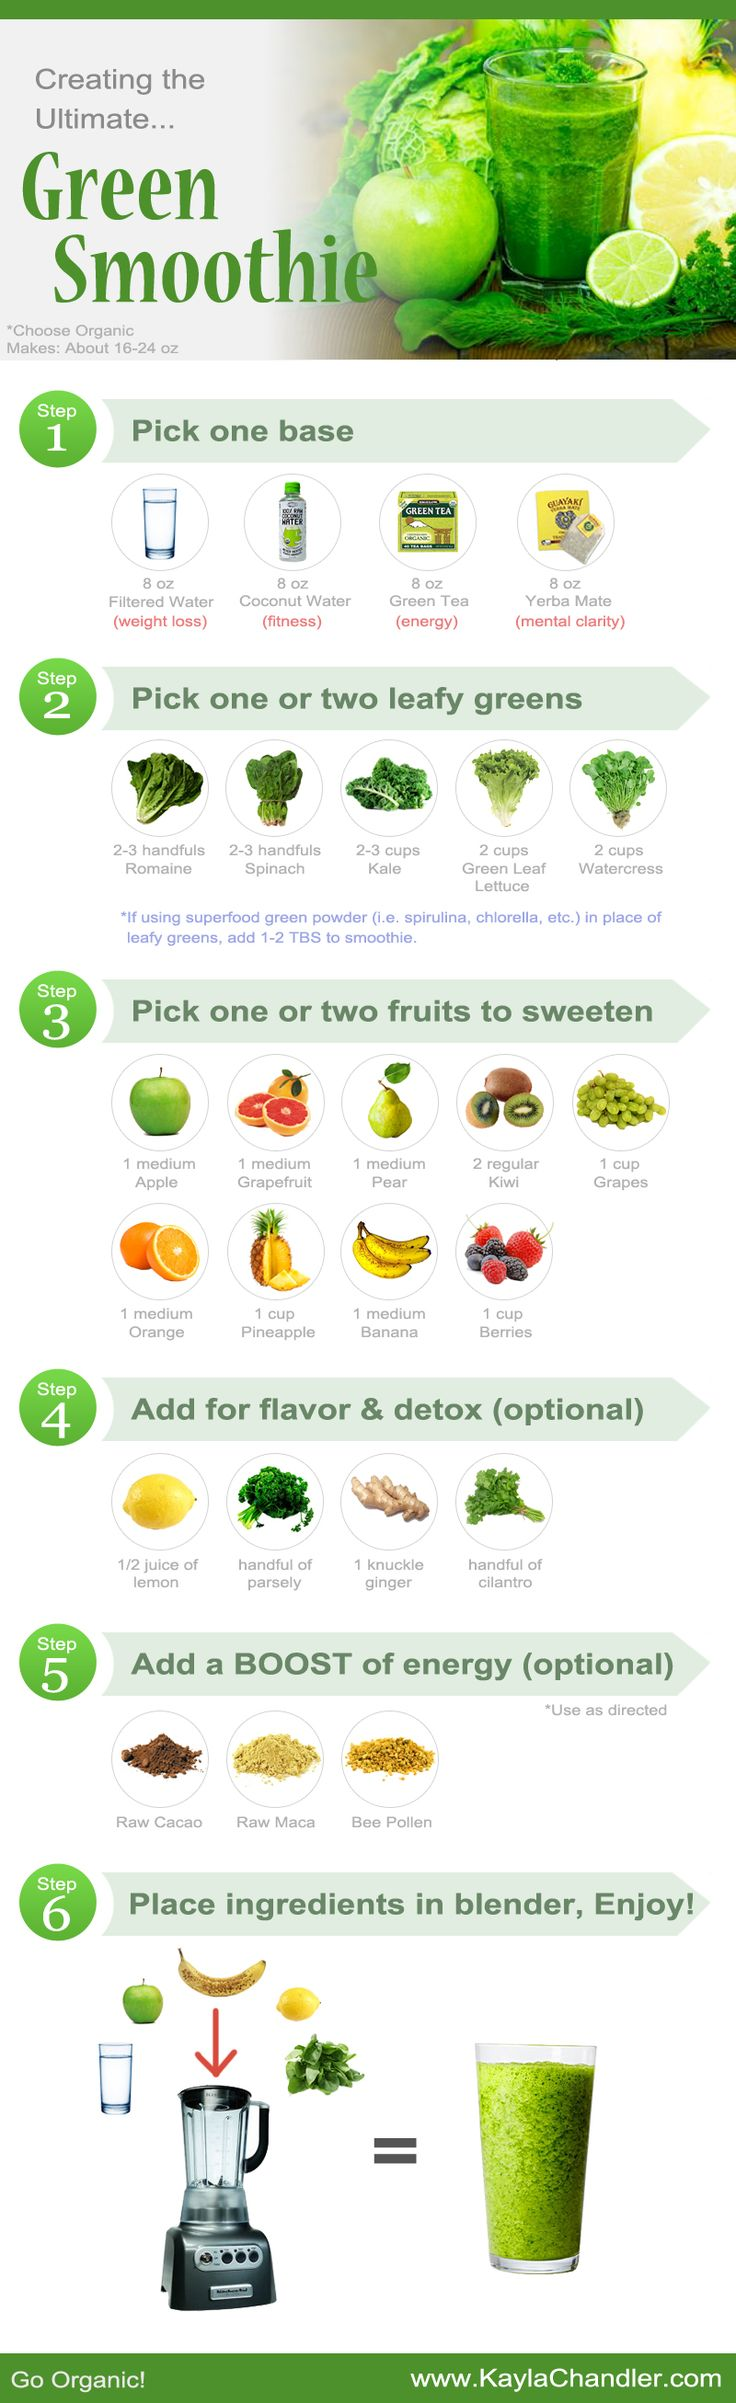 Guide de smoothies verts